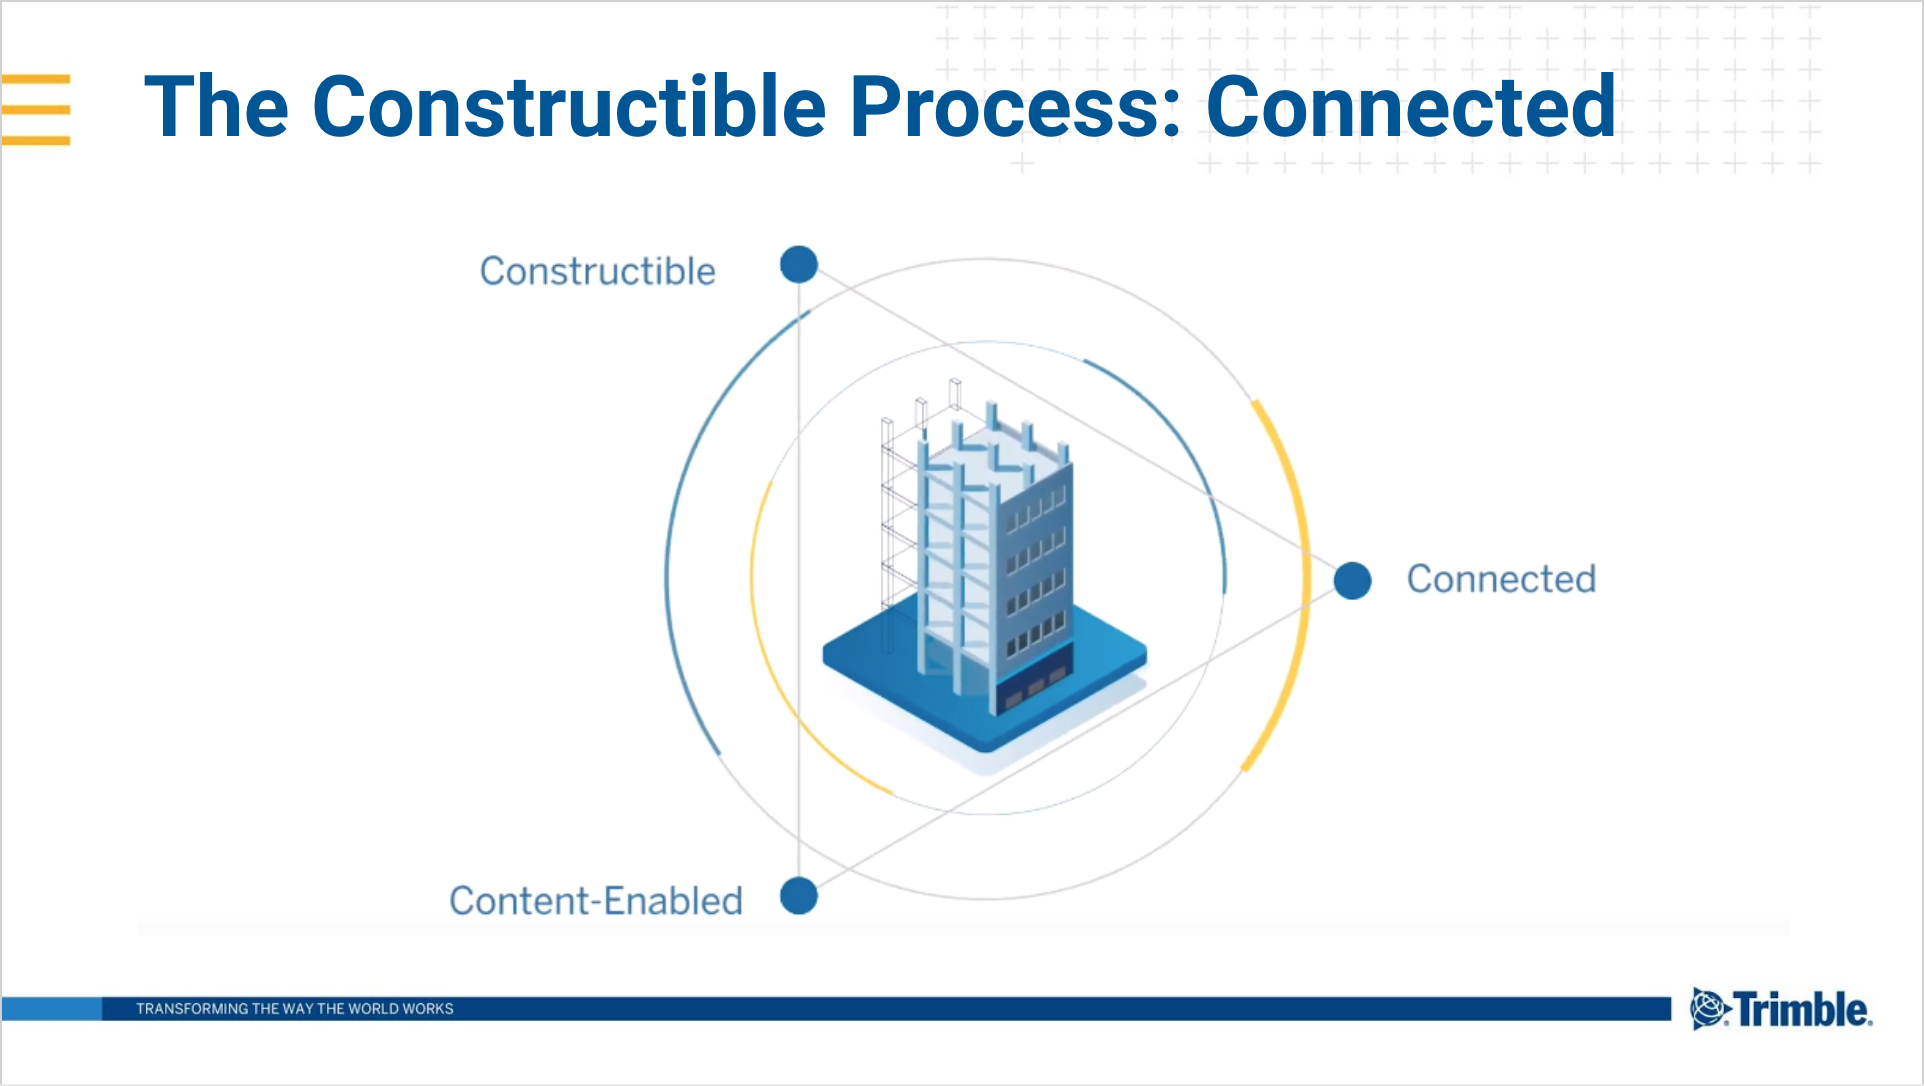 The Constructible Process: Connected